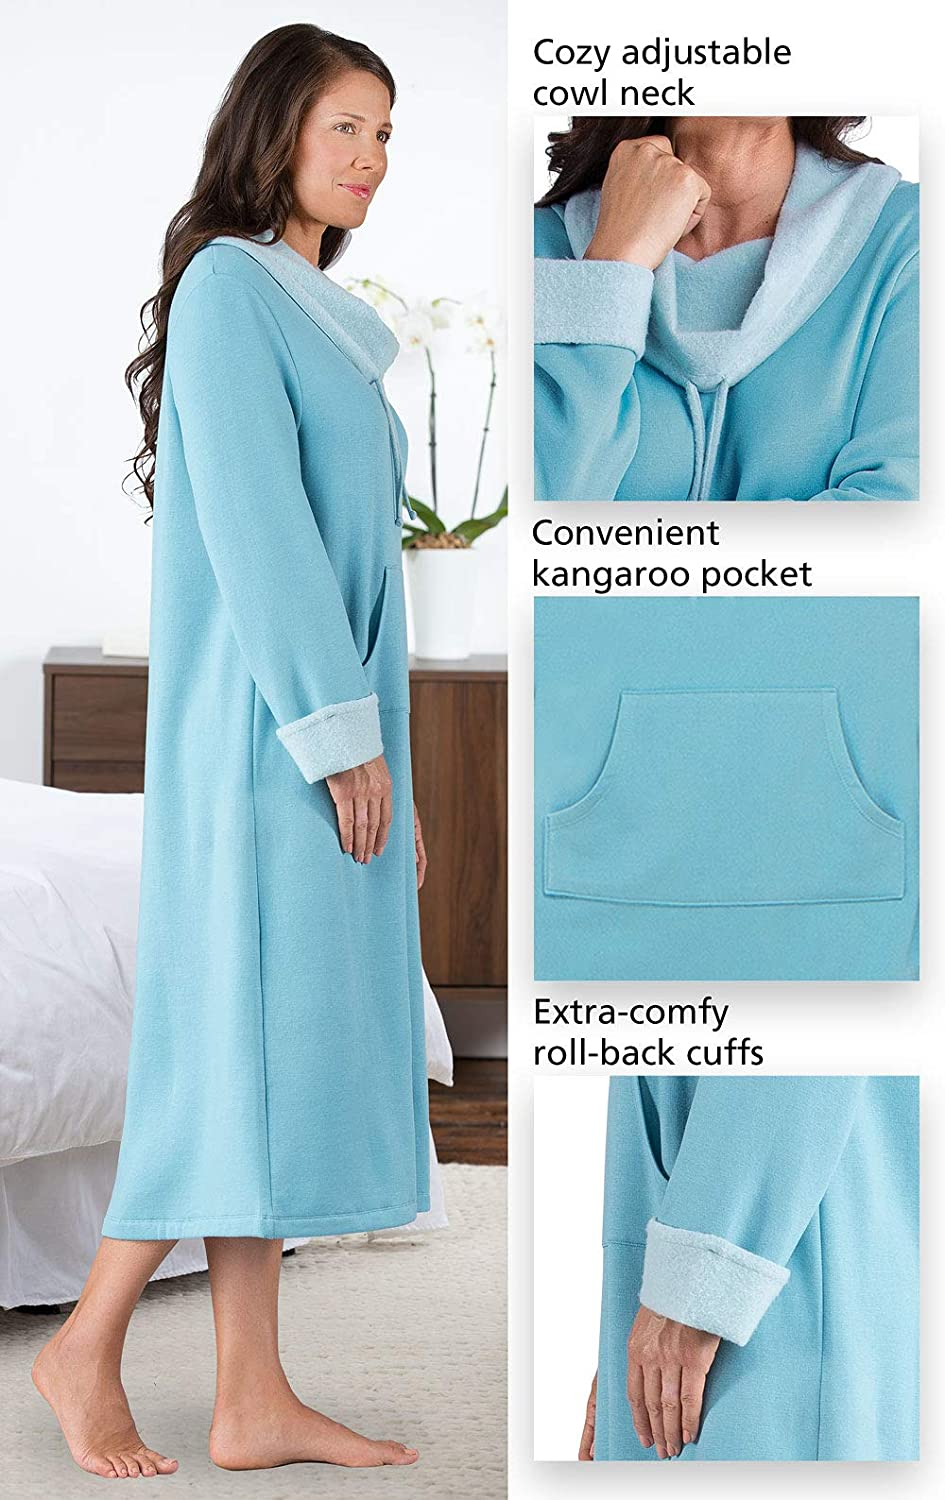 Long Sleeve Nightgown GAMV06009 PajamaGram Soft Nightgowns for Women